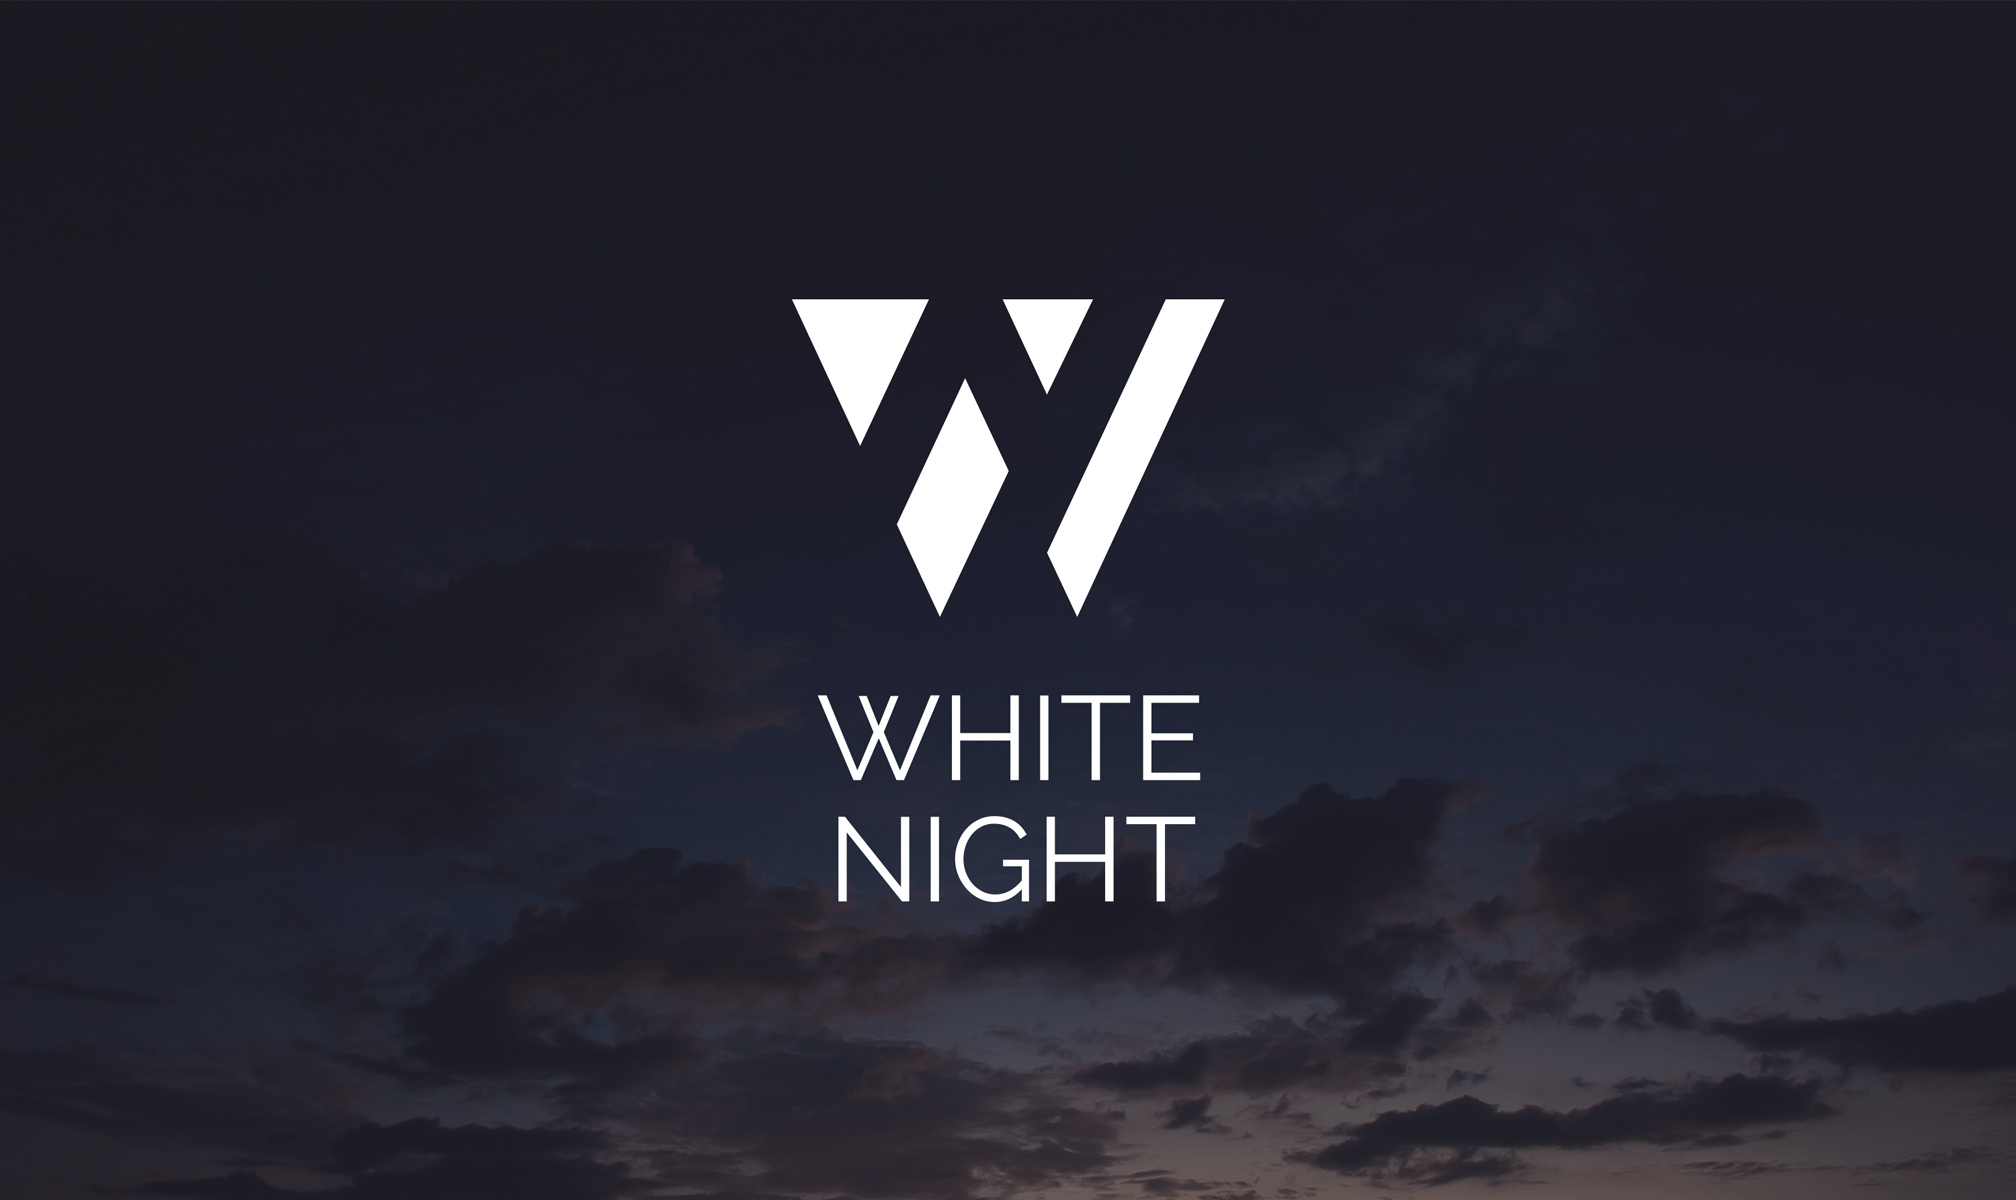 White Night is an after-hours festival. The identity is inspired by the oxymoron inherent in the brand name. The design won a Bronze at the Best Awards. Created with Salted Herring.